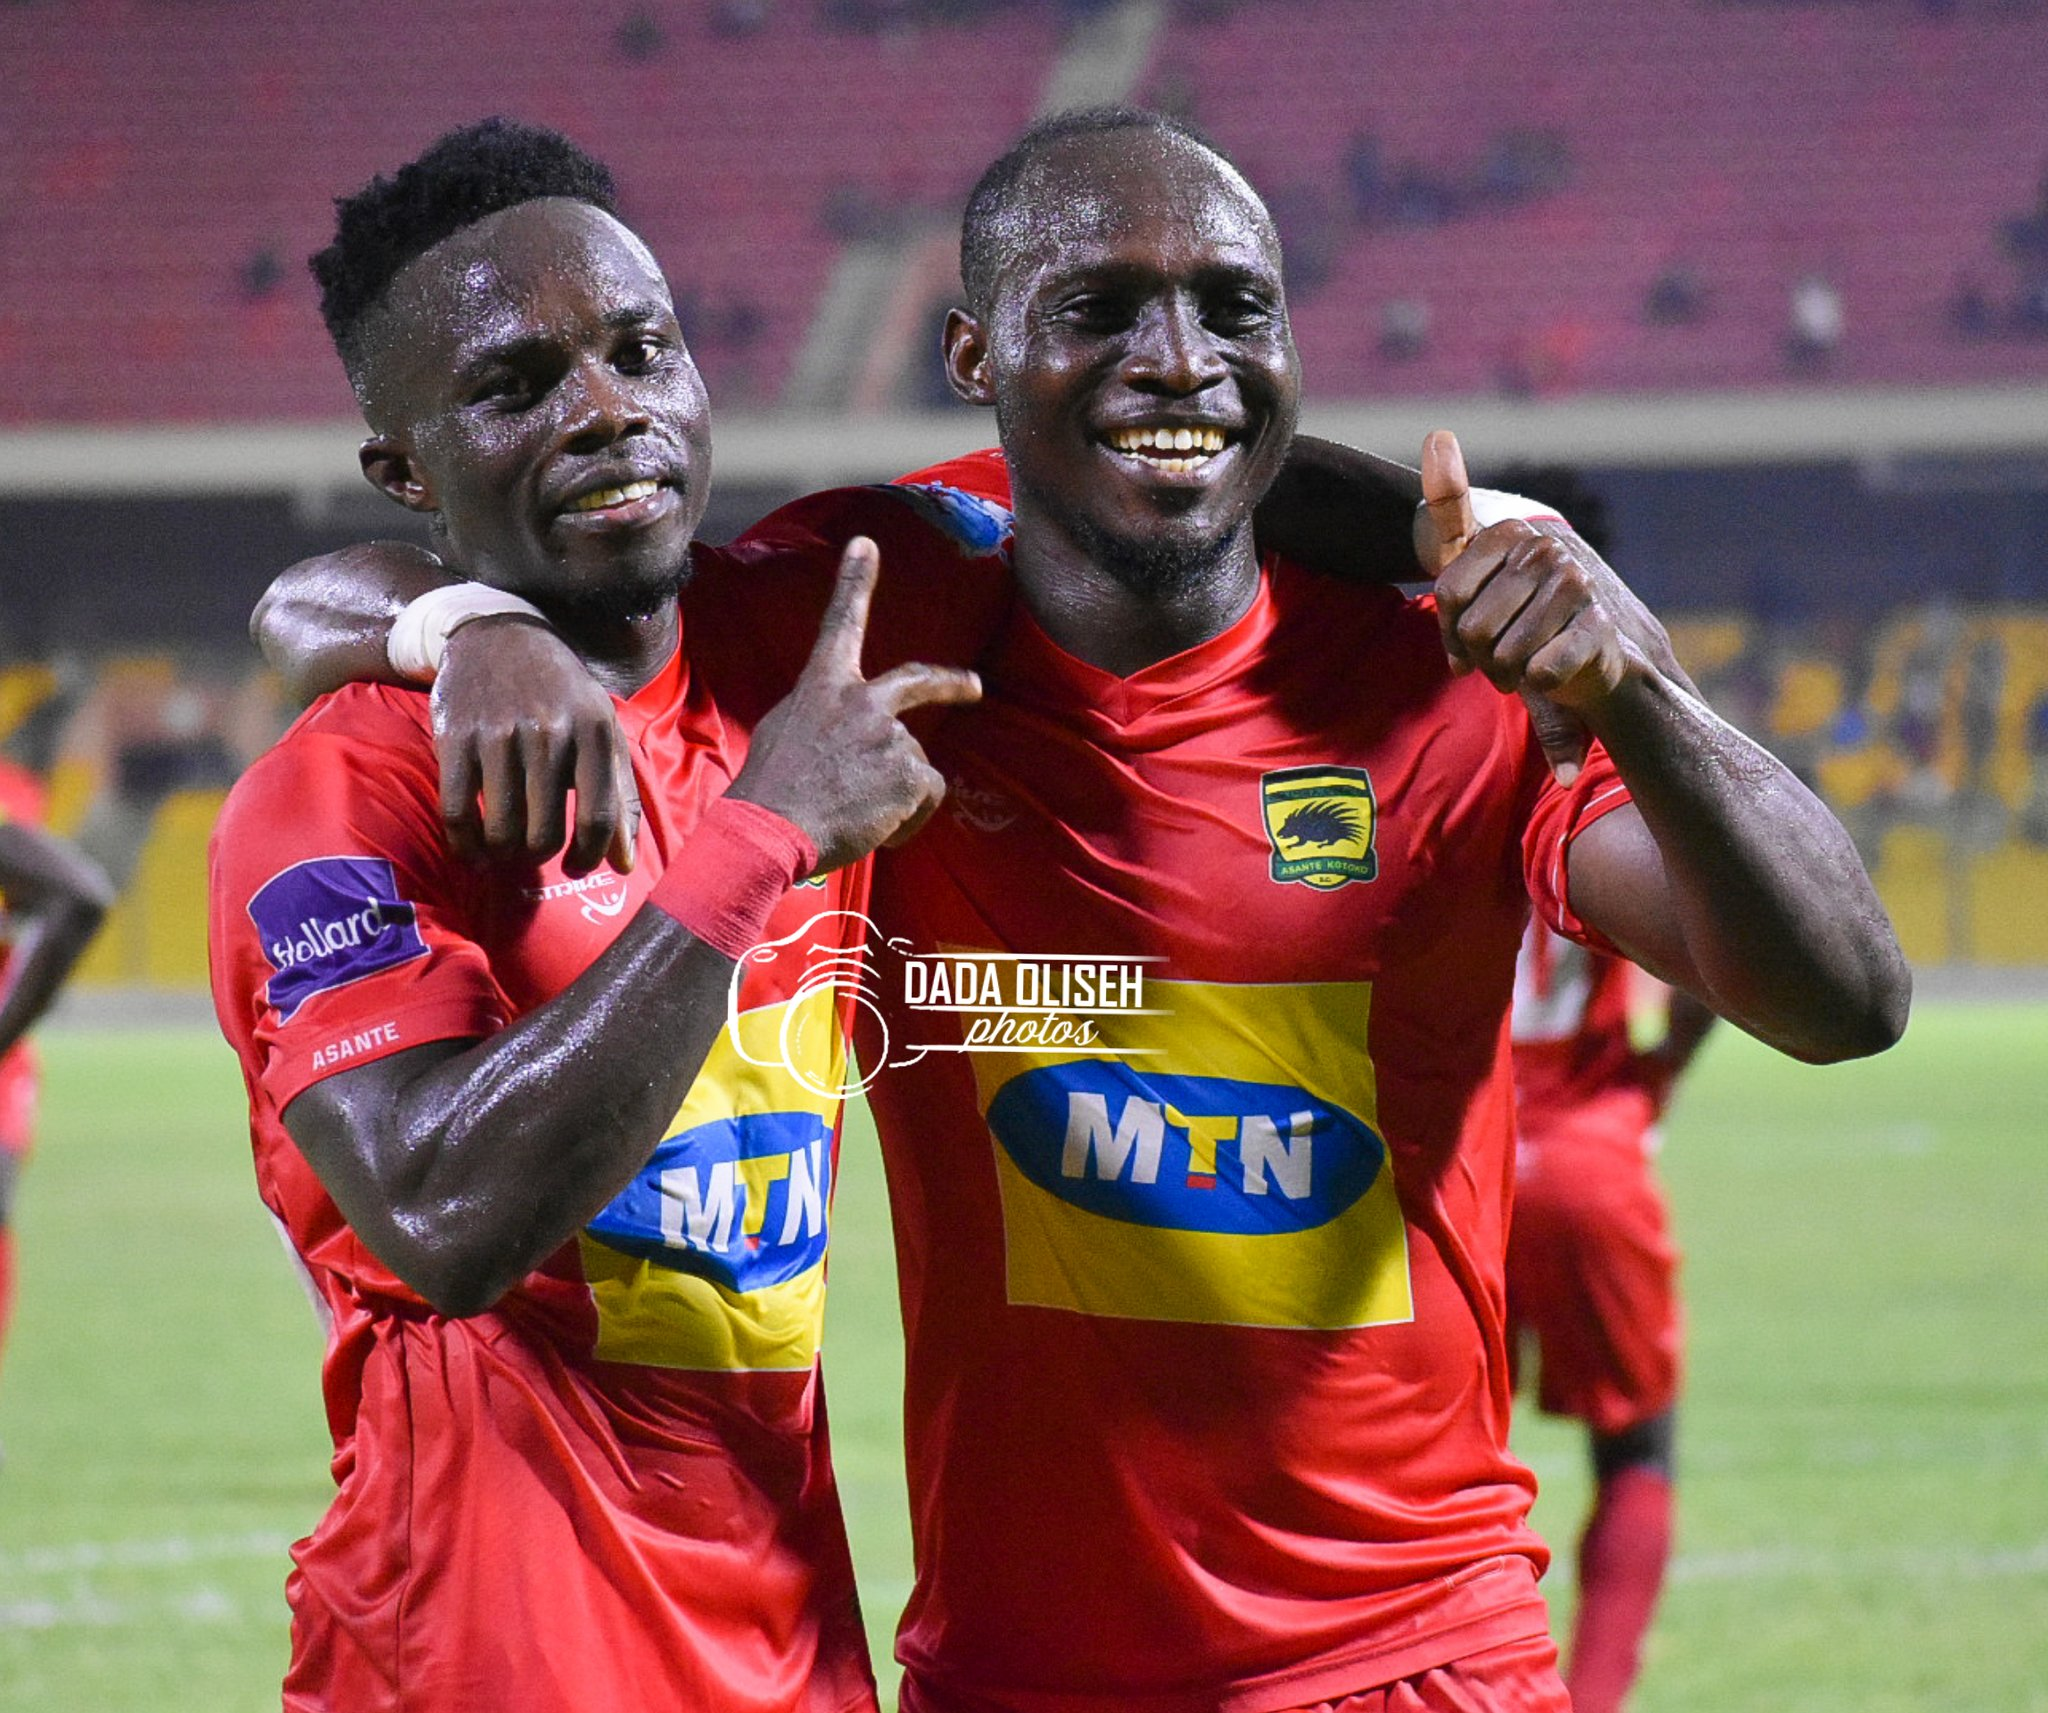 Ghana Premier League matchday 12 report: Kotoko clinches 3-1 win over Bechem